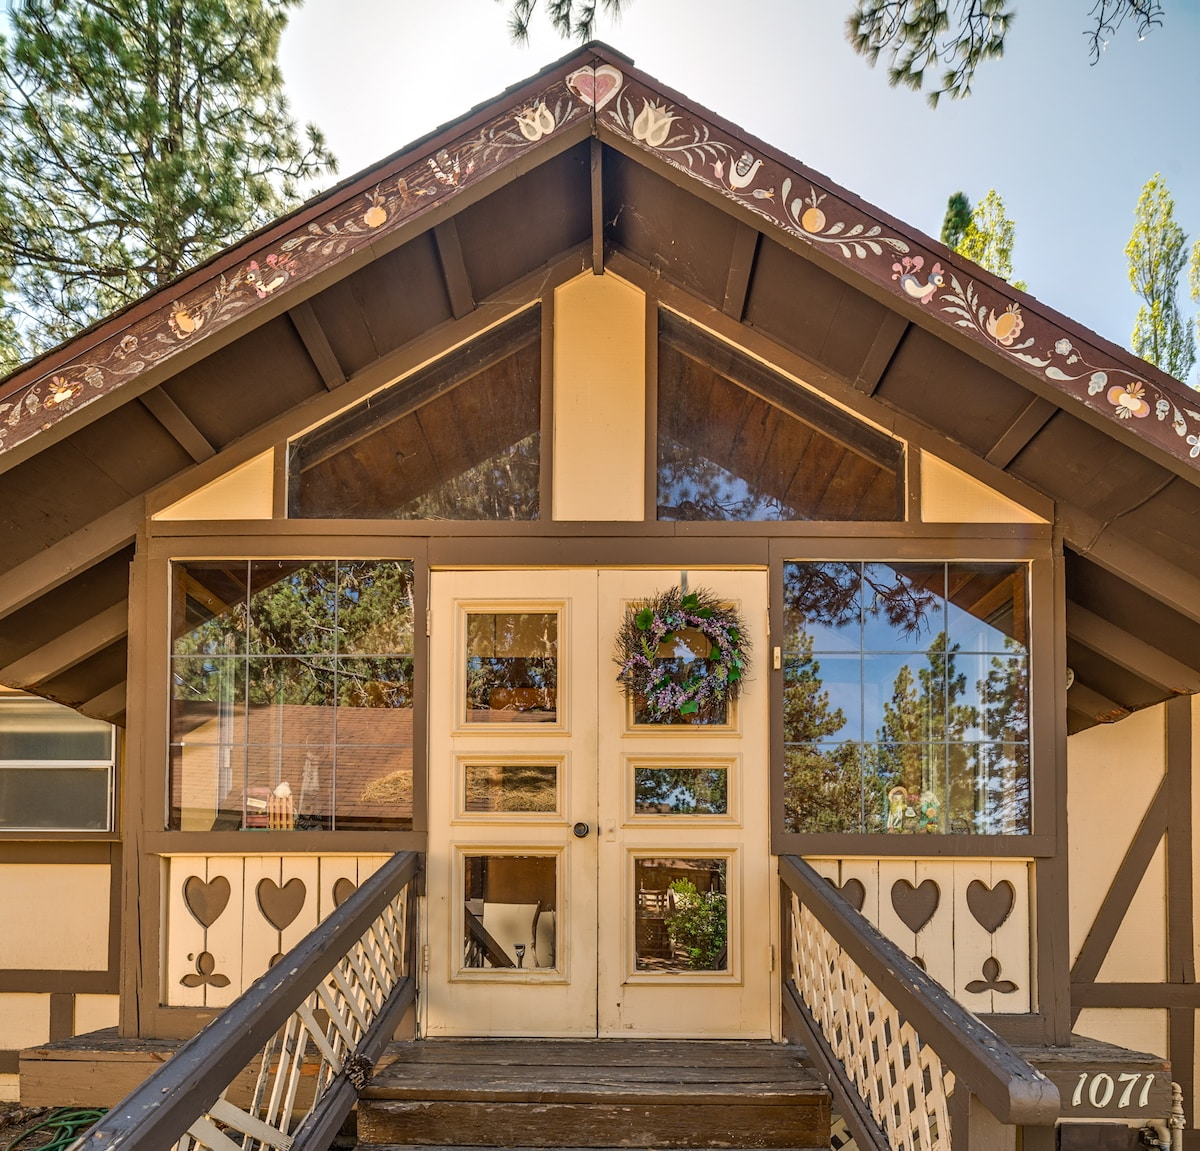 The home is full of custom woodwork, from the old-fashioned front entry...